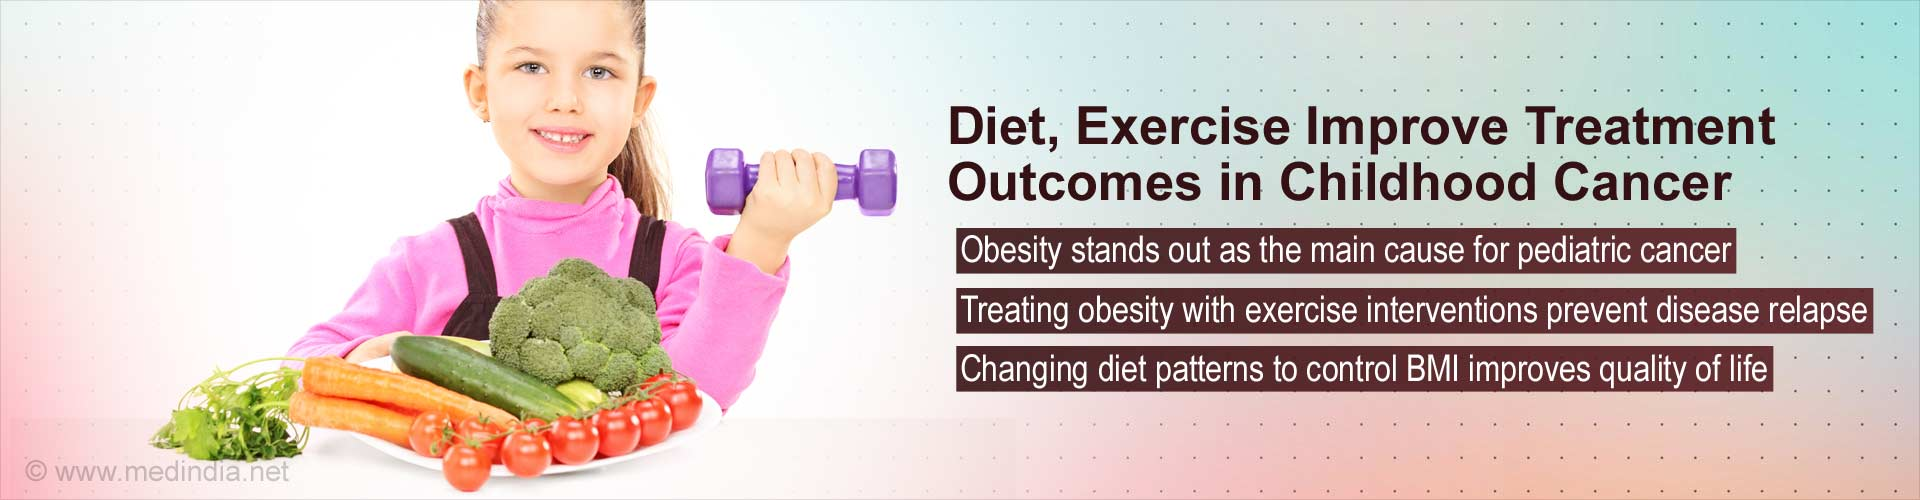 Diet, exercise improve treatment outcomes in childhood cancer